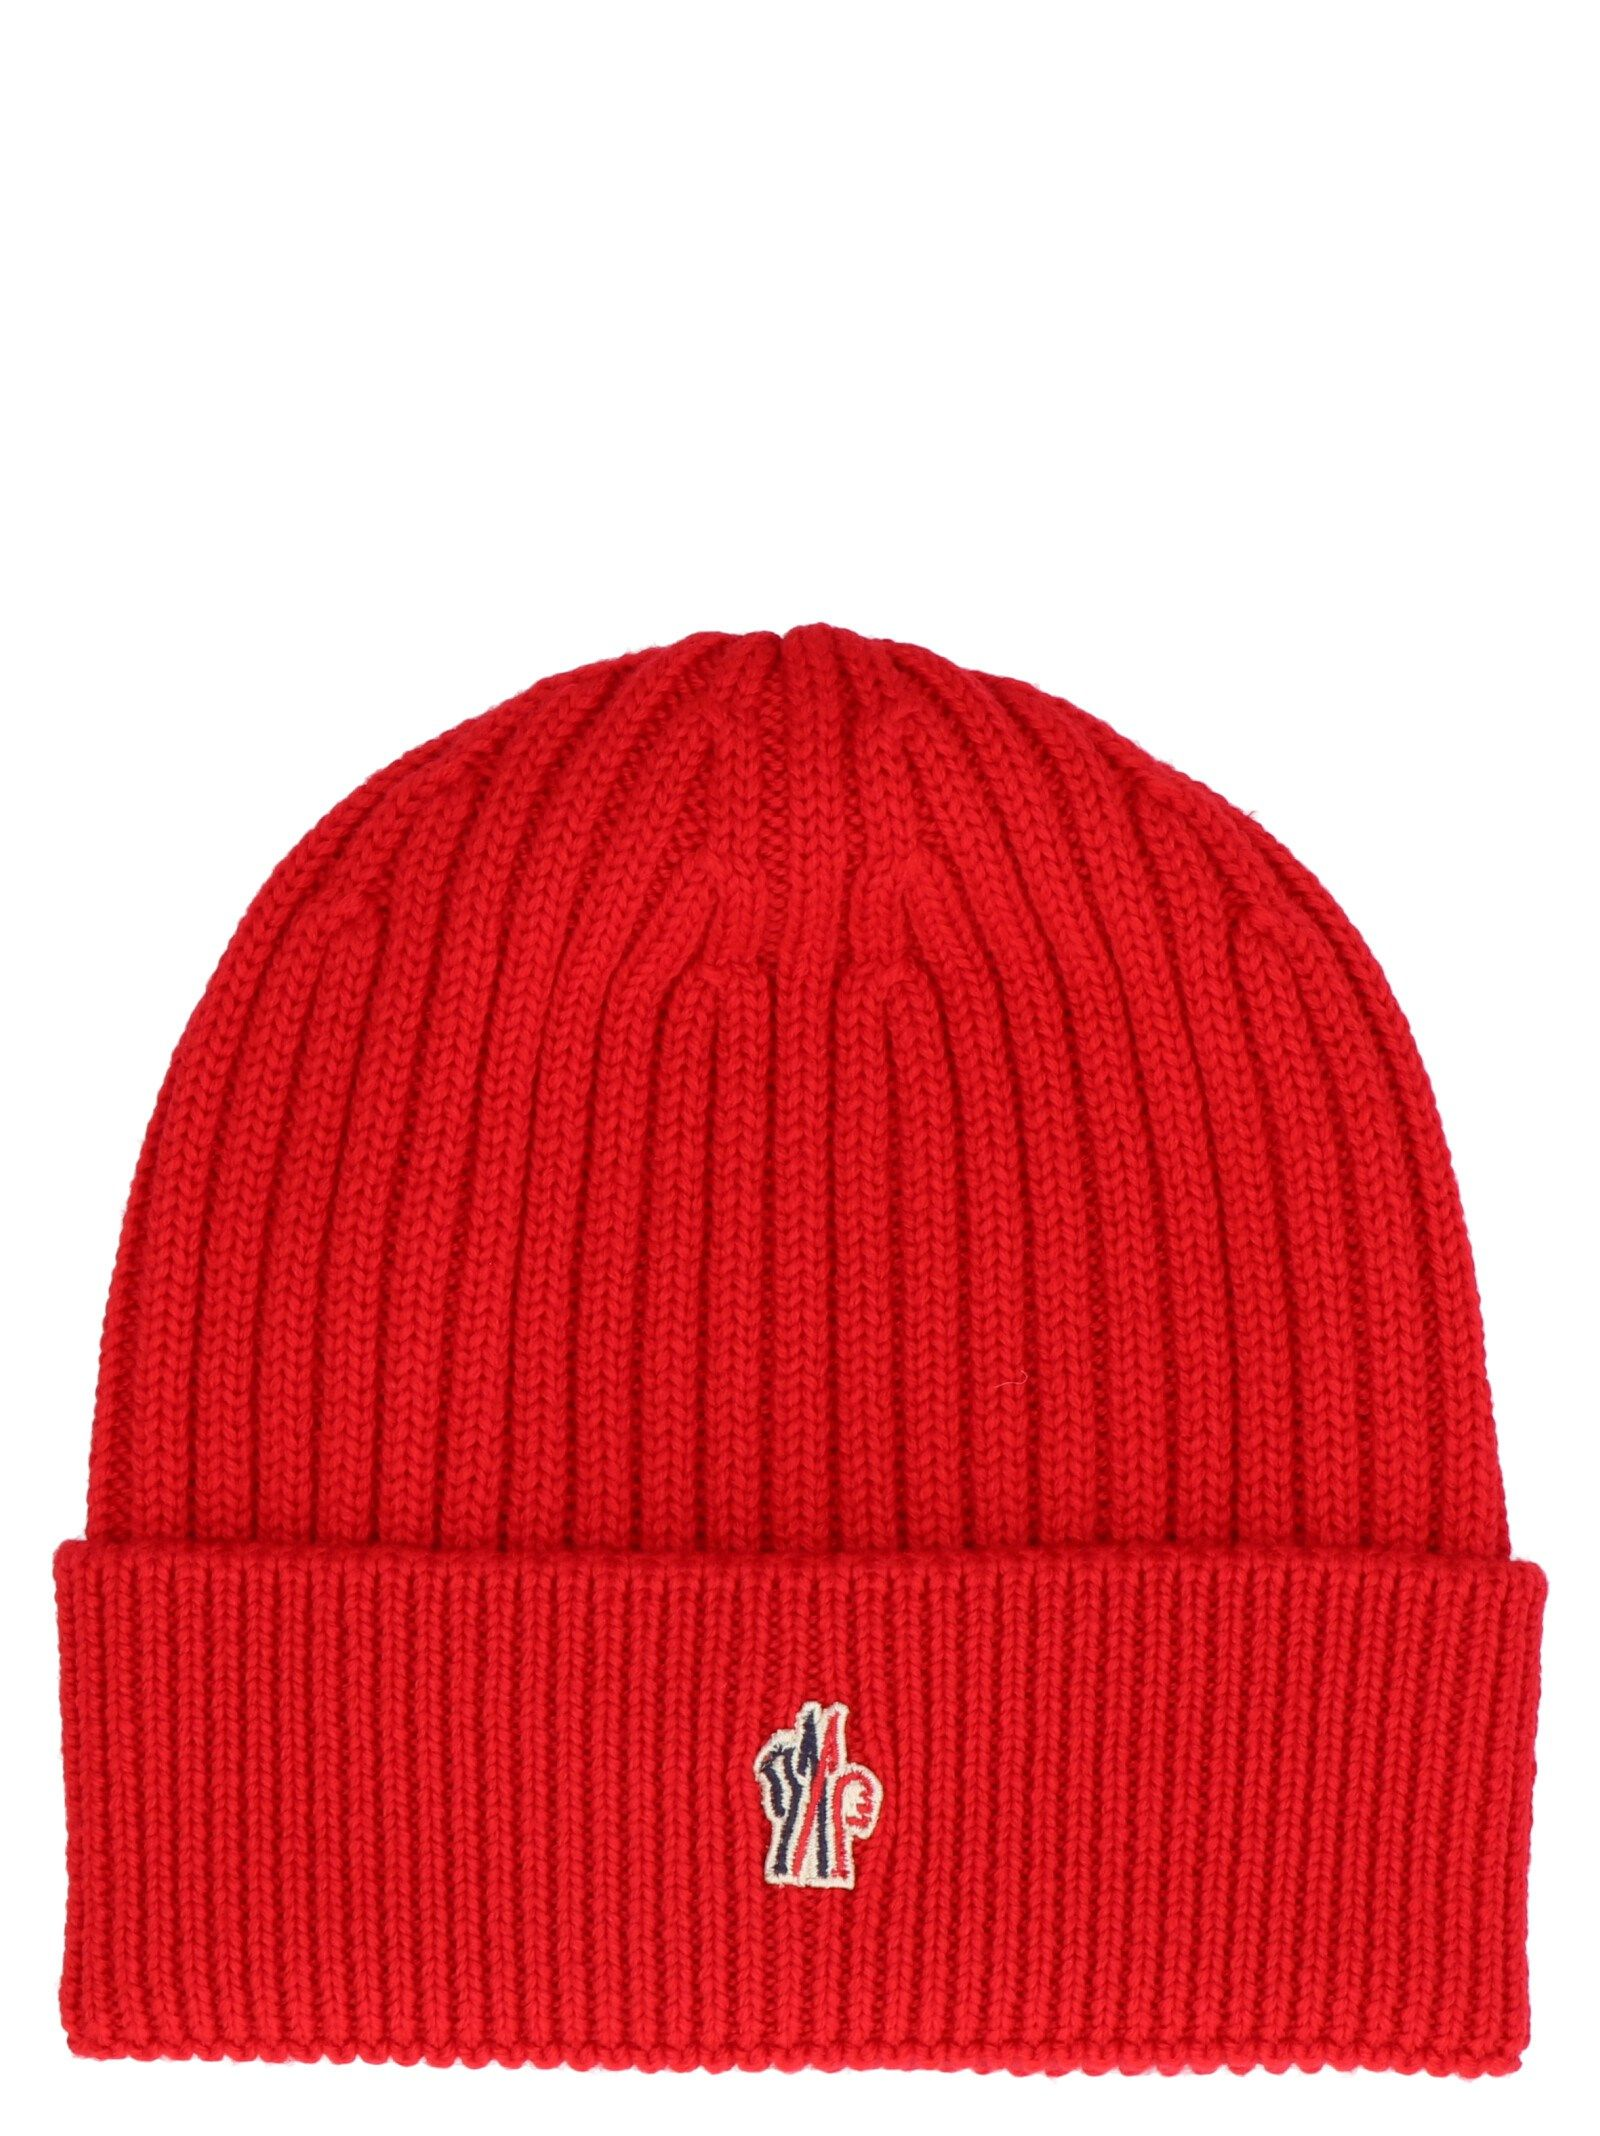 Moncler Red Wool Hat | ModeSens